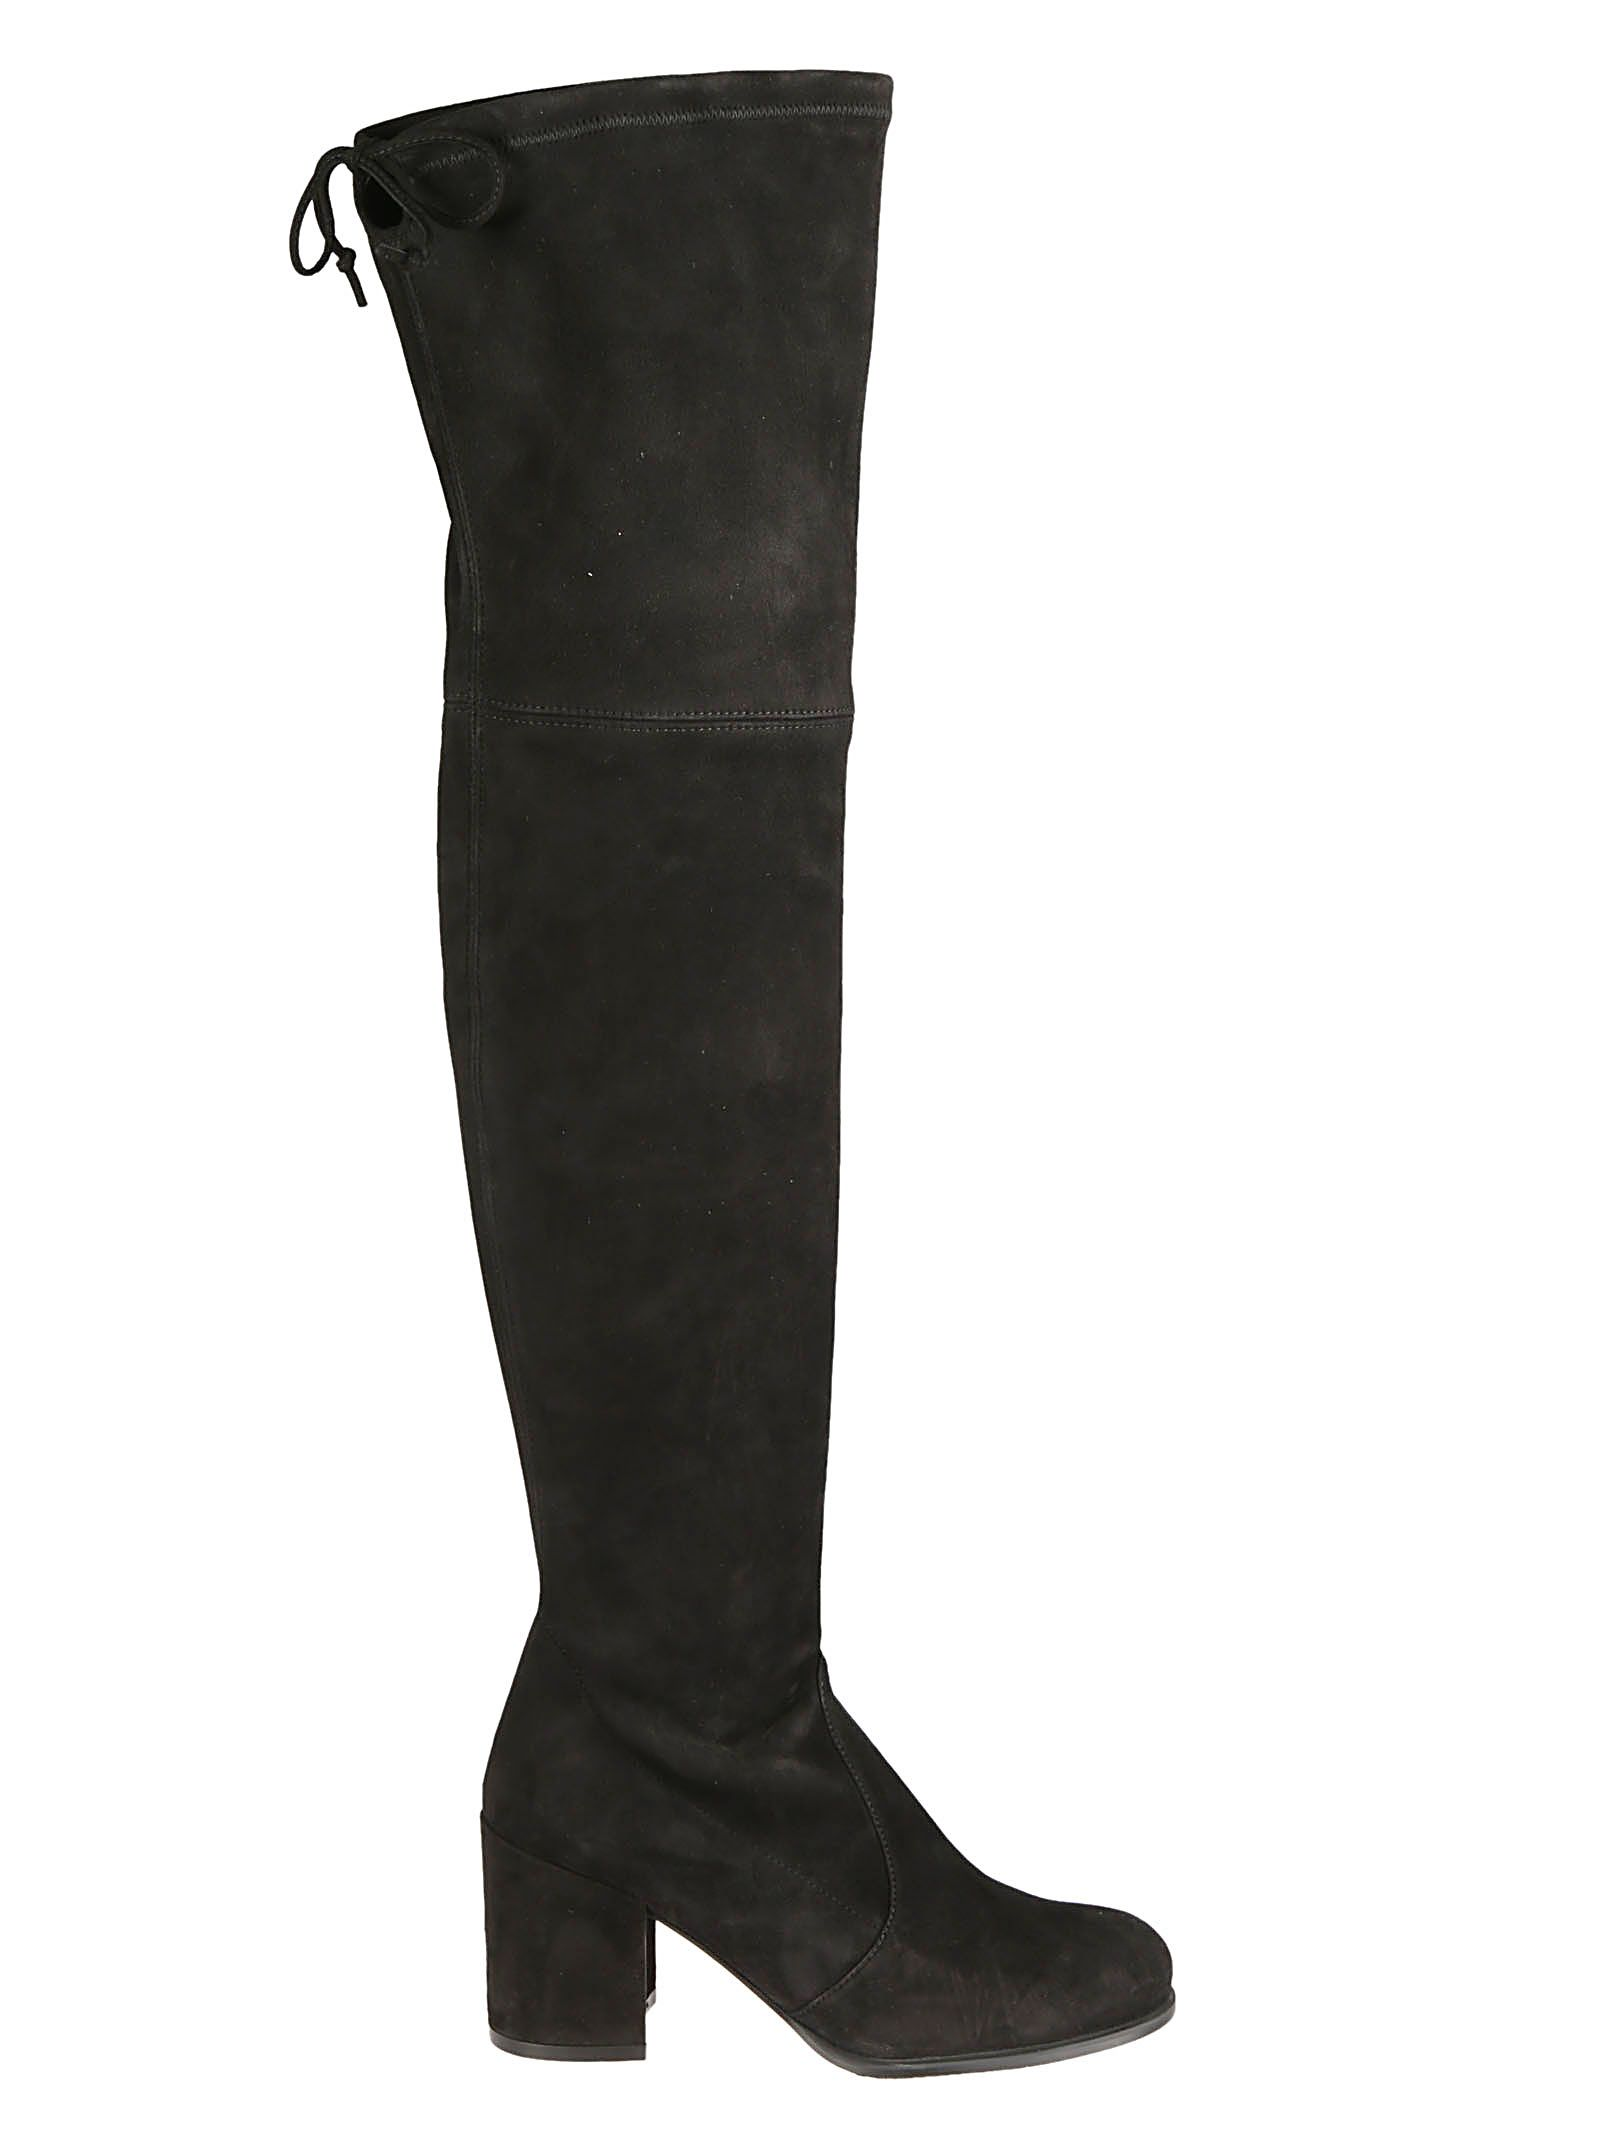 Tieland Over-The-Knee Boots in Black